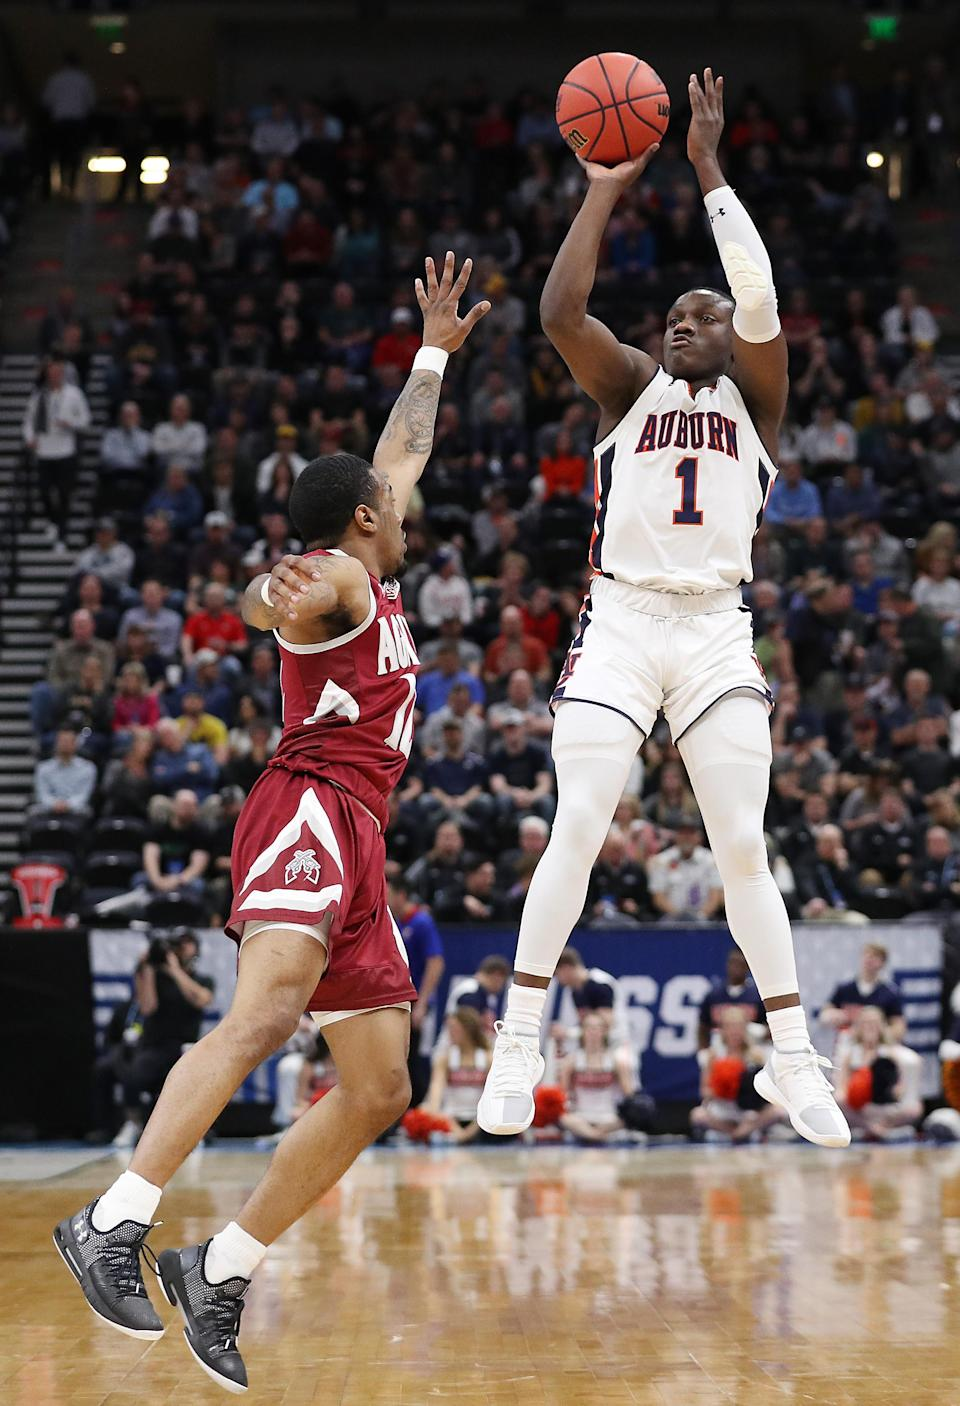 <p>Jared Harper #1 of the Auburn Tigers shoots the ball during the first half against the New Mexico State Aggies in the first round of the 2019 NCAA Men's Basketball Tournament at Vivint Smart Home Arena on March 21, 2019 in Salt Lake City, Utah. (Photo by Patrick Smith/Getty Images) </p>